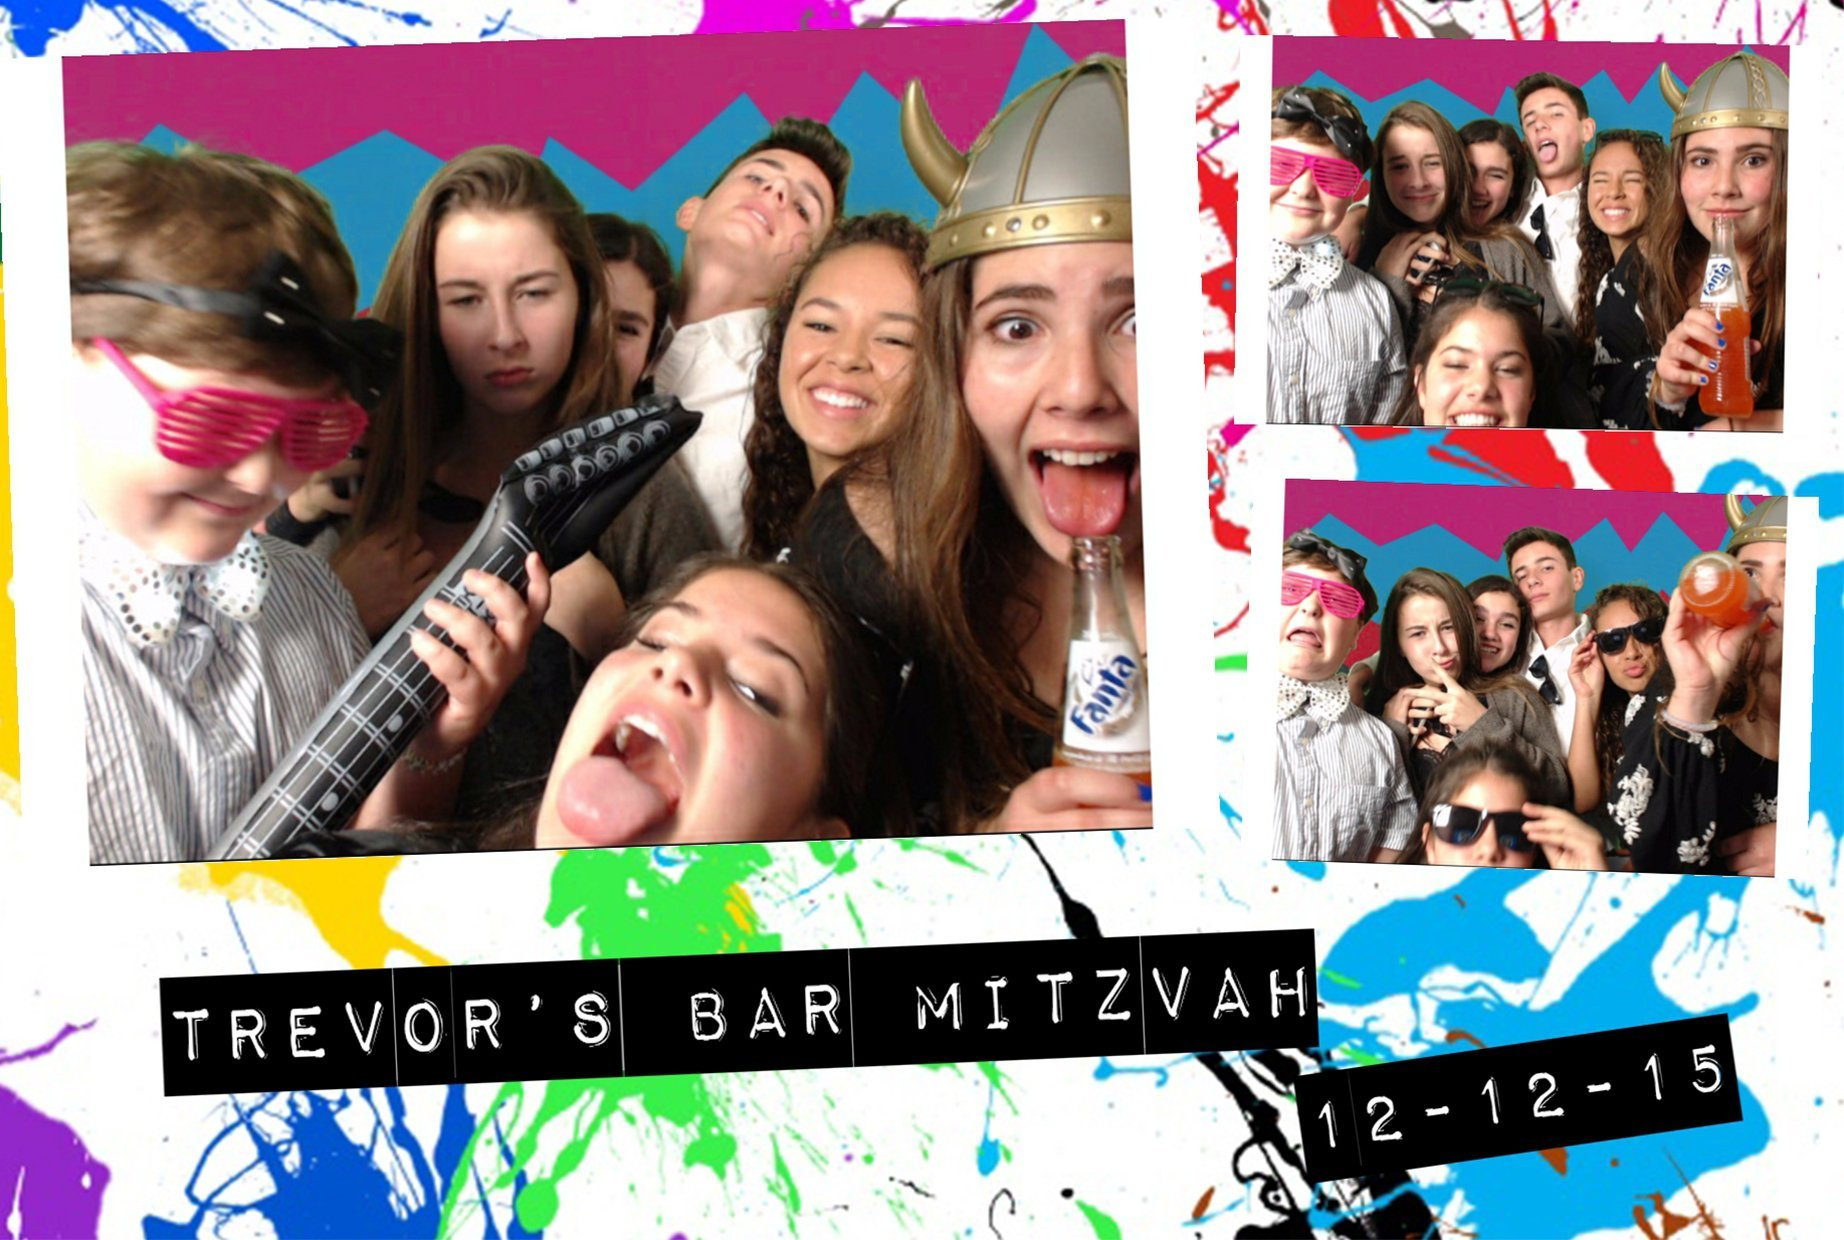 Green Screen Photos For Bar Mitvahs in San Francisco Bay Area